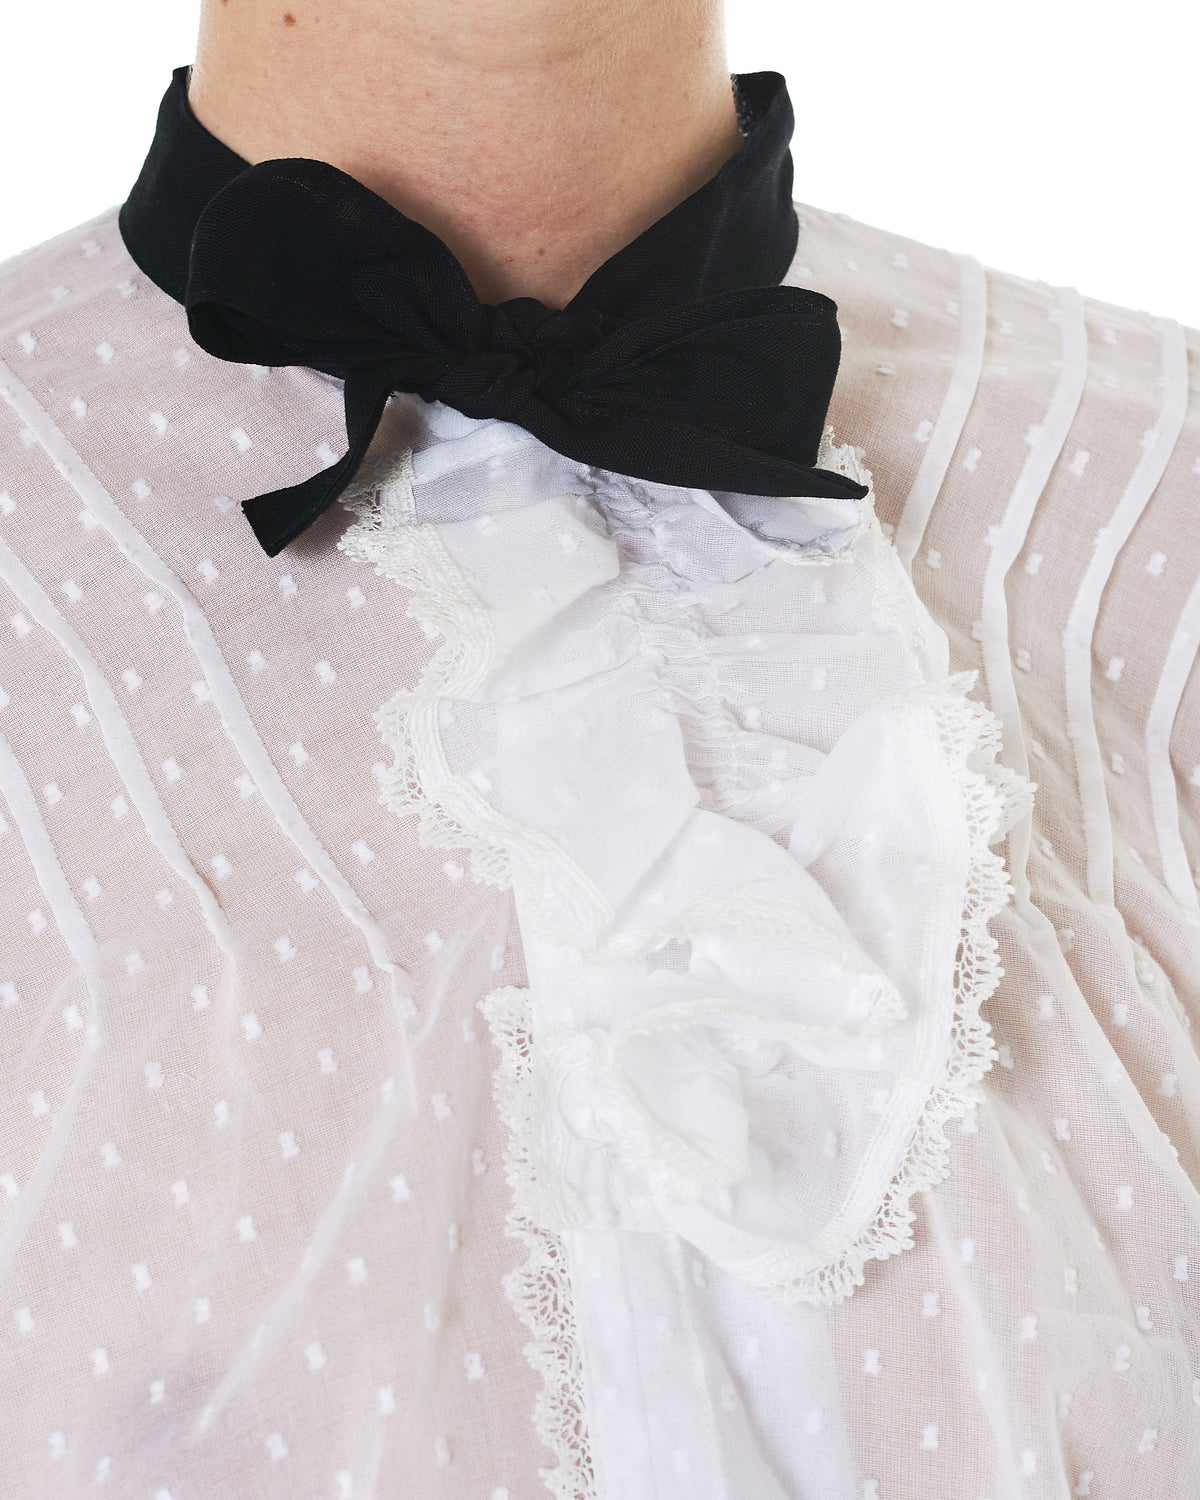 Sheer Bowtie Blouse (TA-B202-051-2)